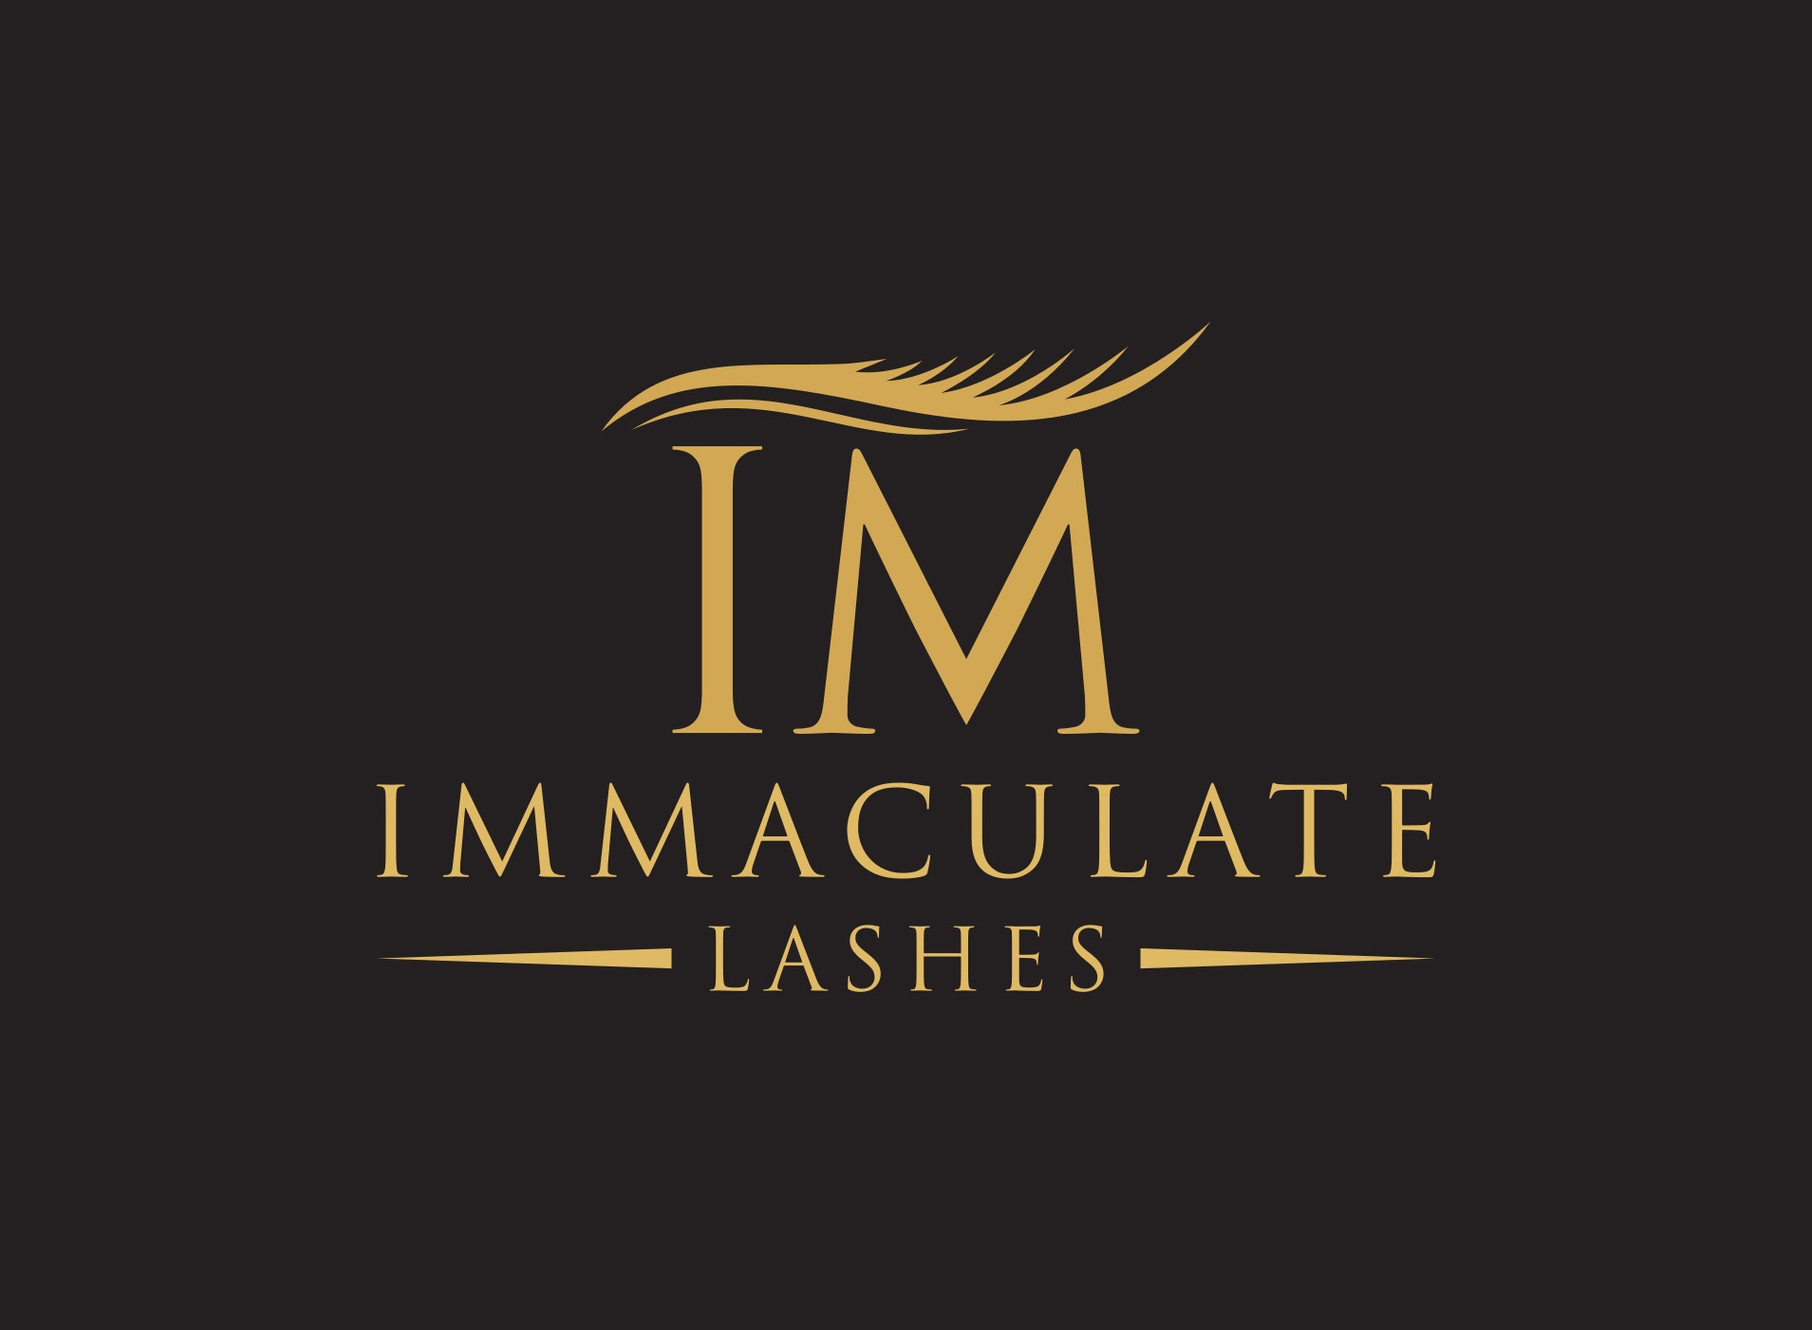 Immaculate Lashes | About